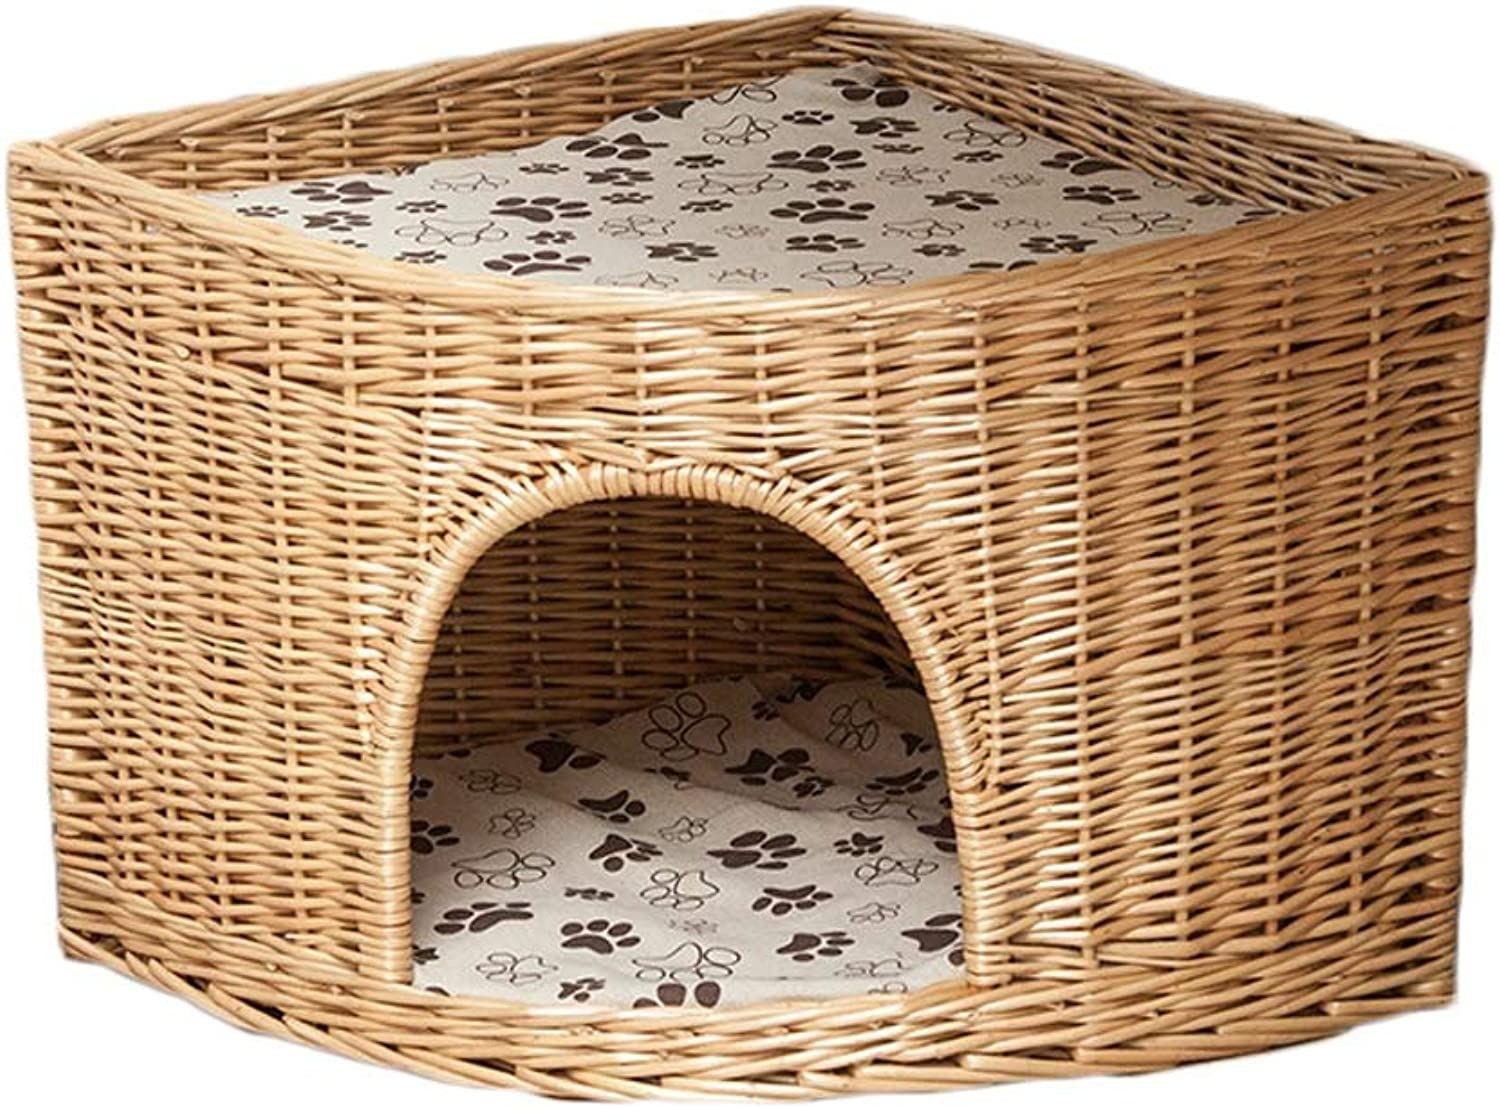 LFpet supplies Rattan Pet Bed Removable And Washable Four Seasons Universal Dog House Cat Litter Fan Angle